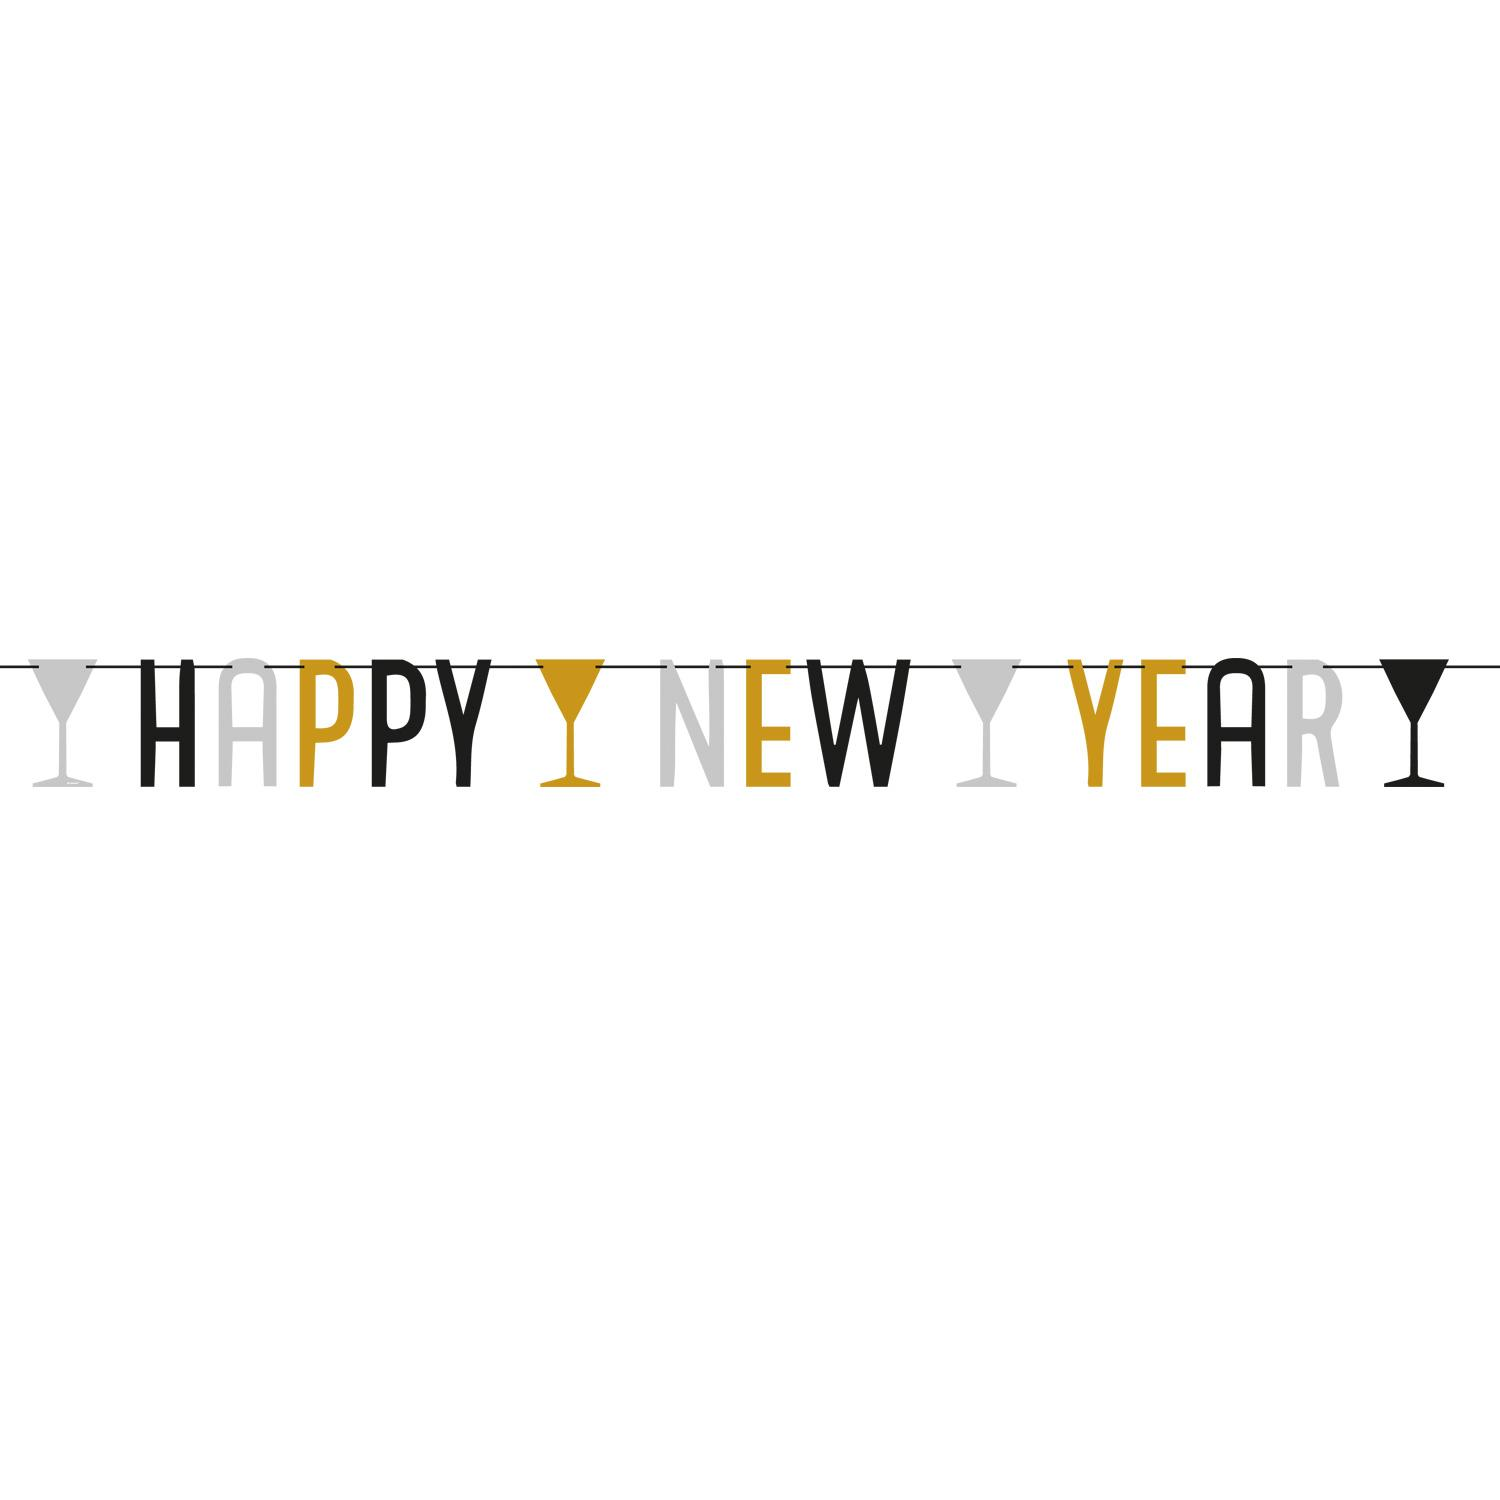 Happy New Year Letter Banner